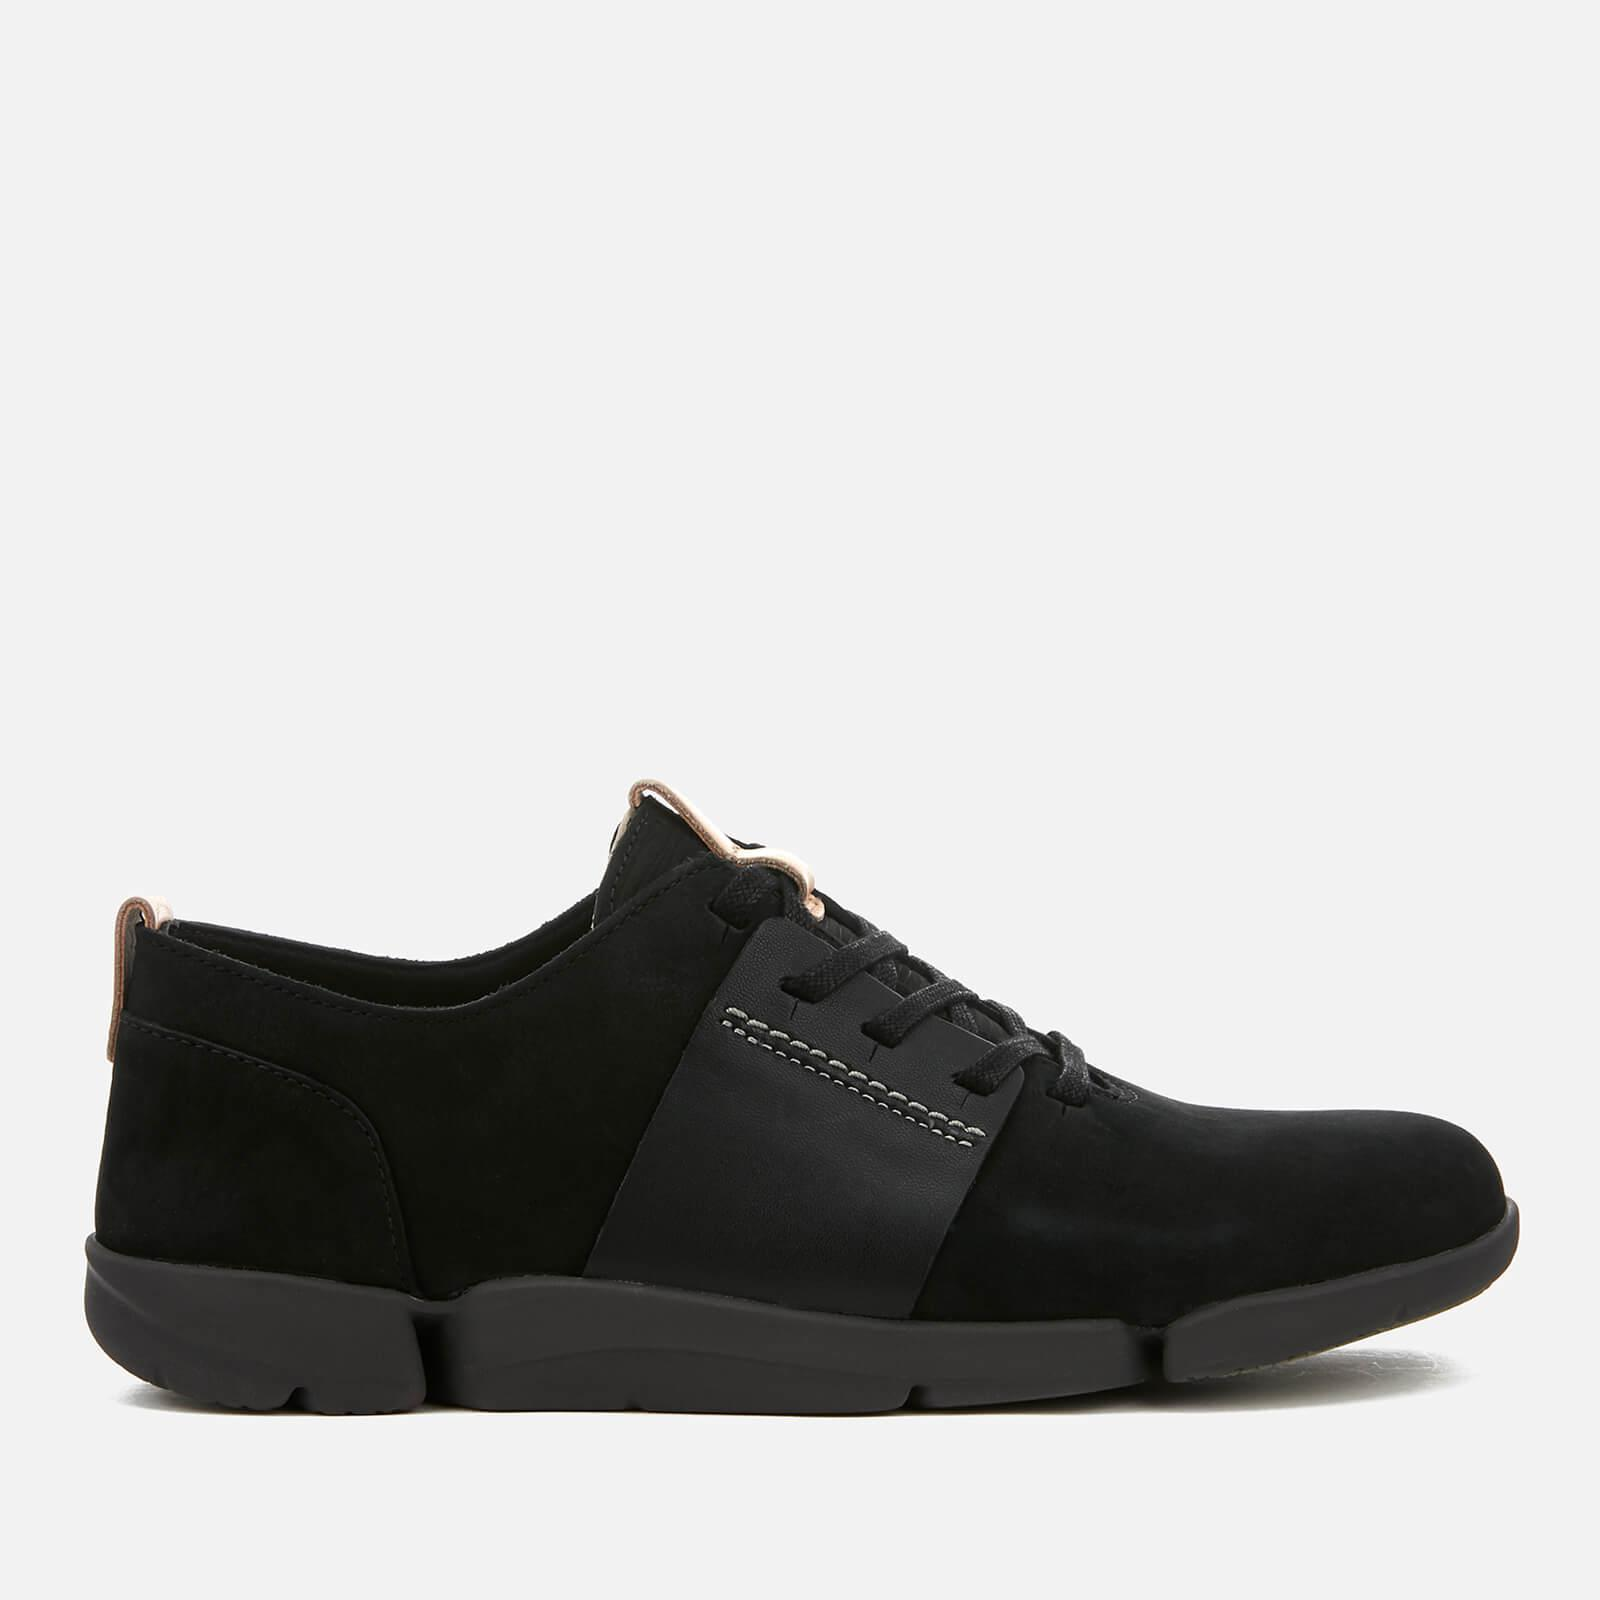 cheap low price fee shipping cheapest CLARKS Tri Caitlin Leather Trainers 100% original for sale free shipping low cost footlocker finishline for sale pzKYxdIV8